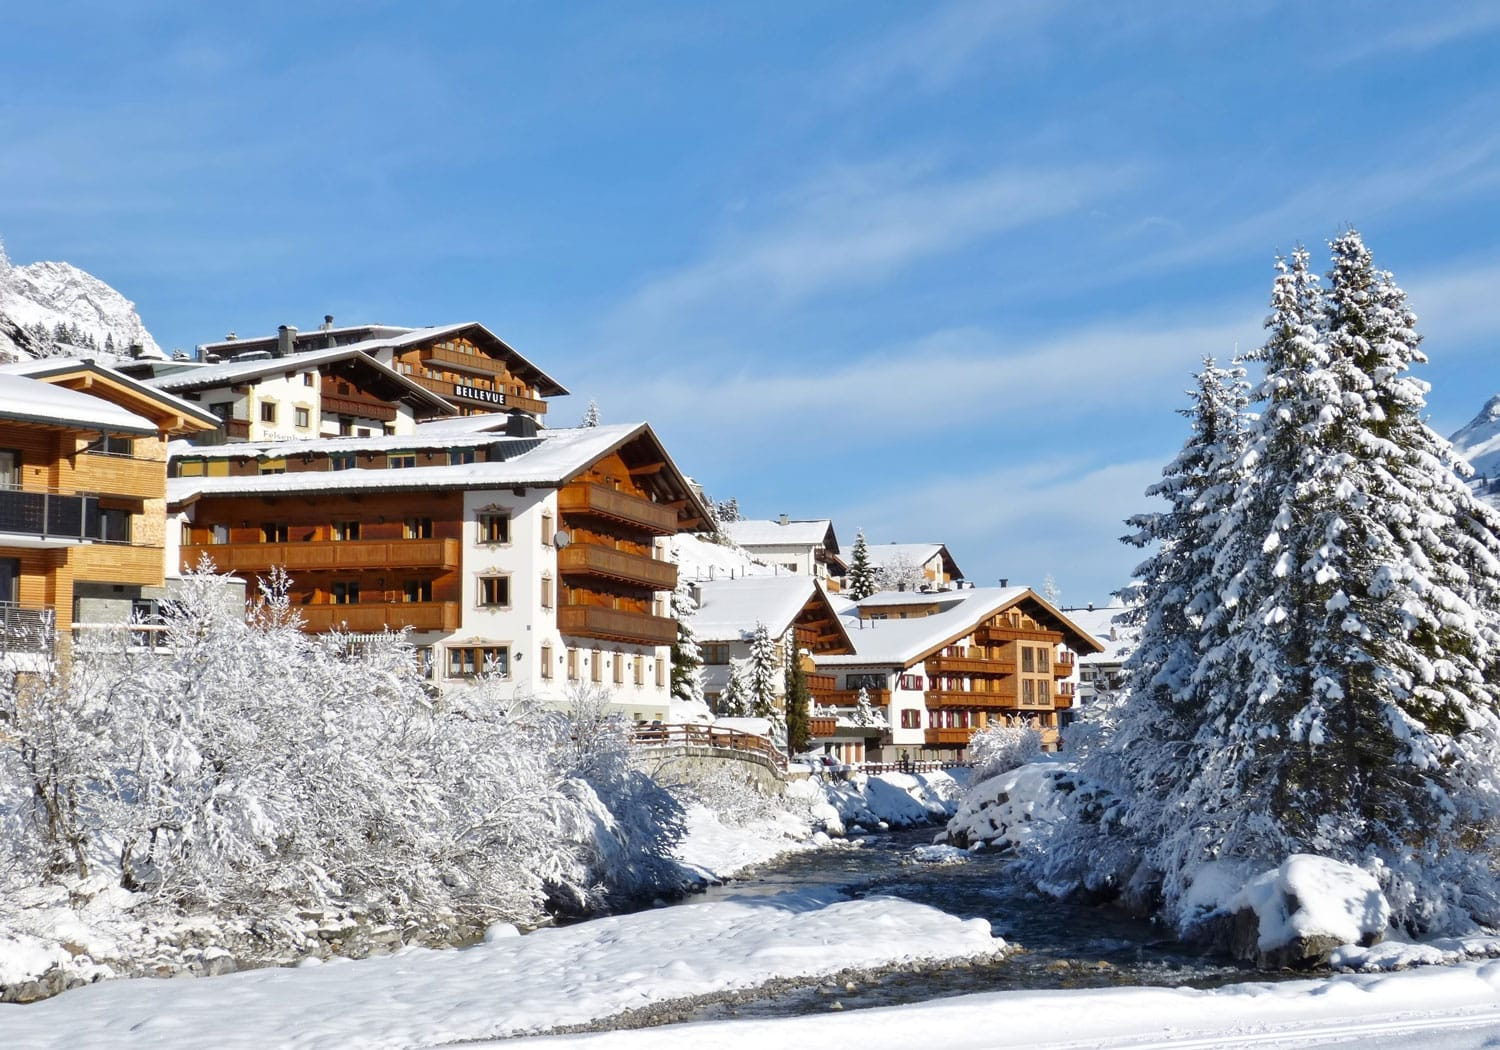 Winter in the famous village of Lech am Arlberg in the Austrian alps